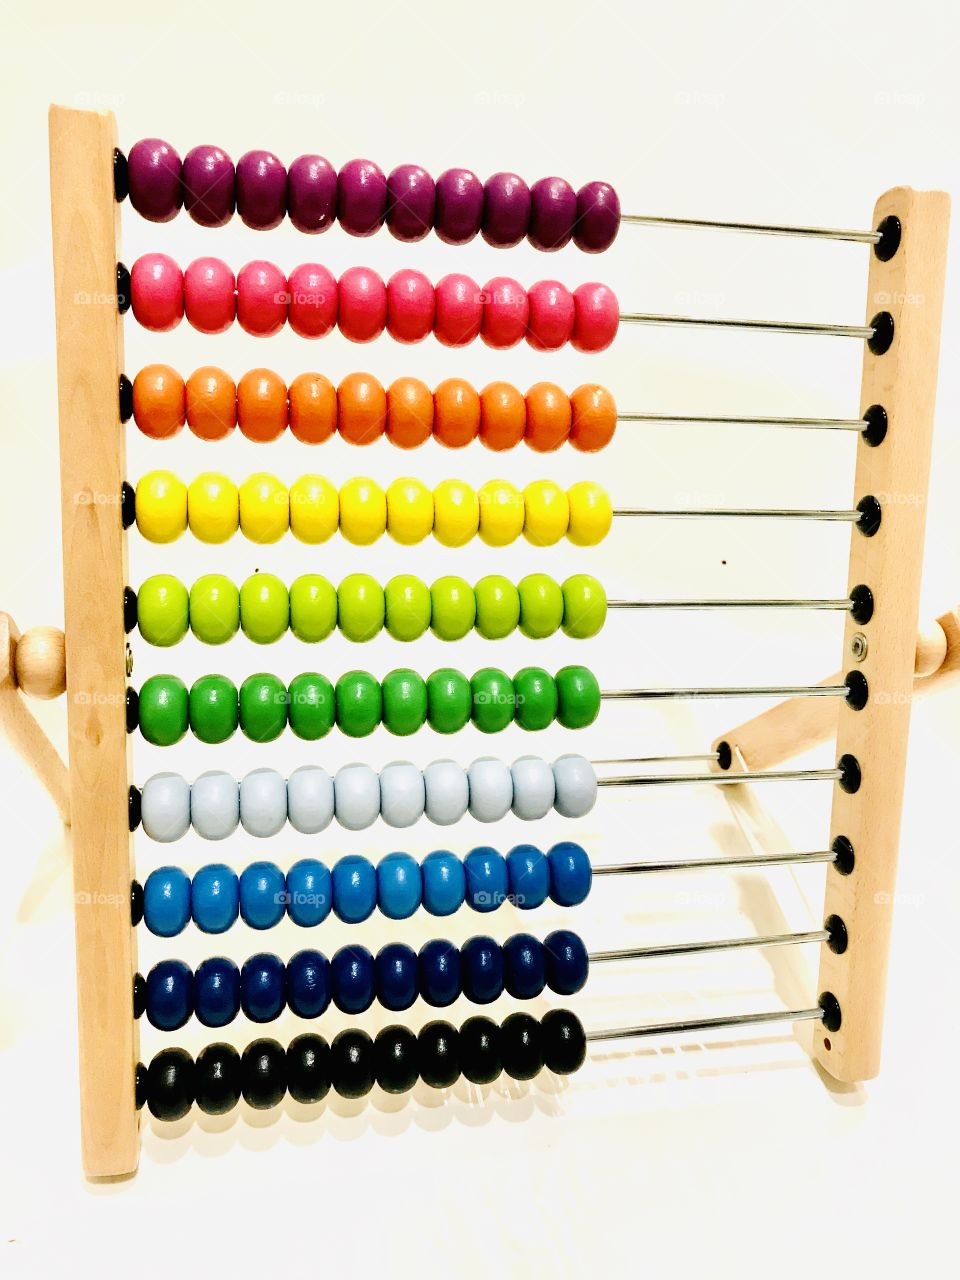 Gorgeous very colorful photo of rainbow colored abacus beads displayed against white background.